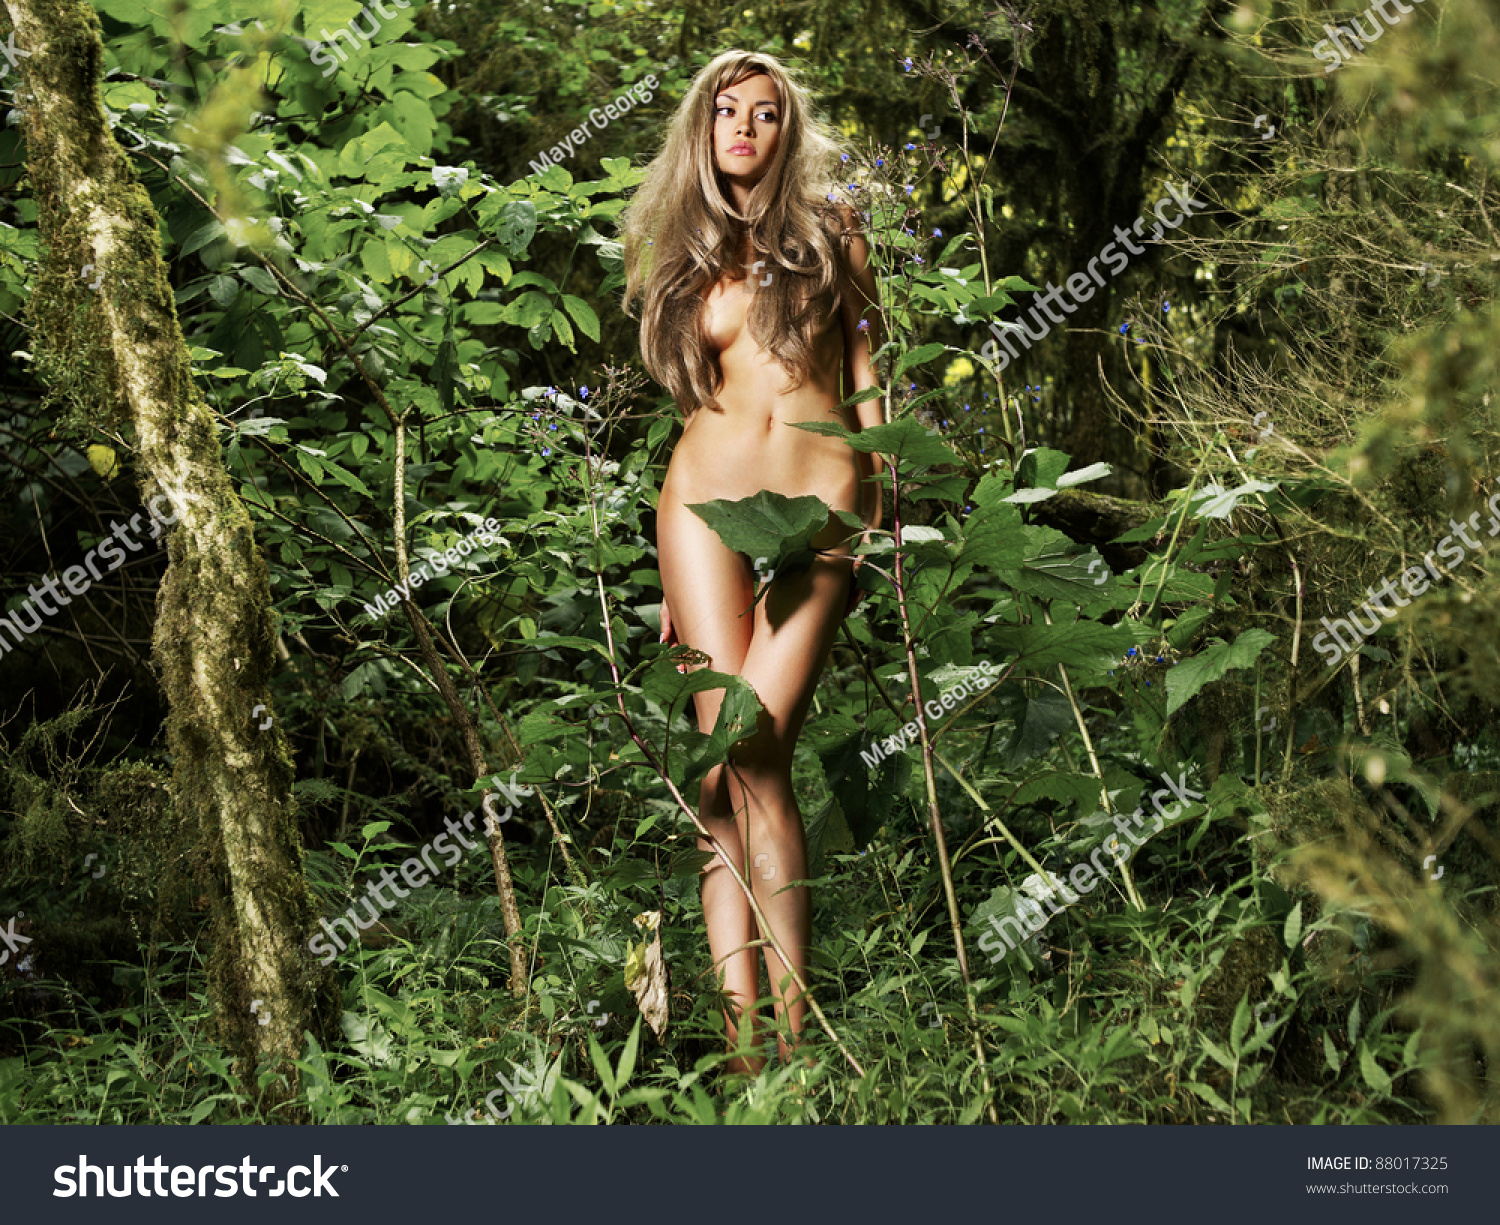 from Royce hot women in the jungle nude